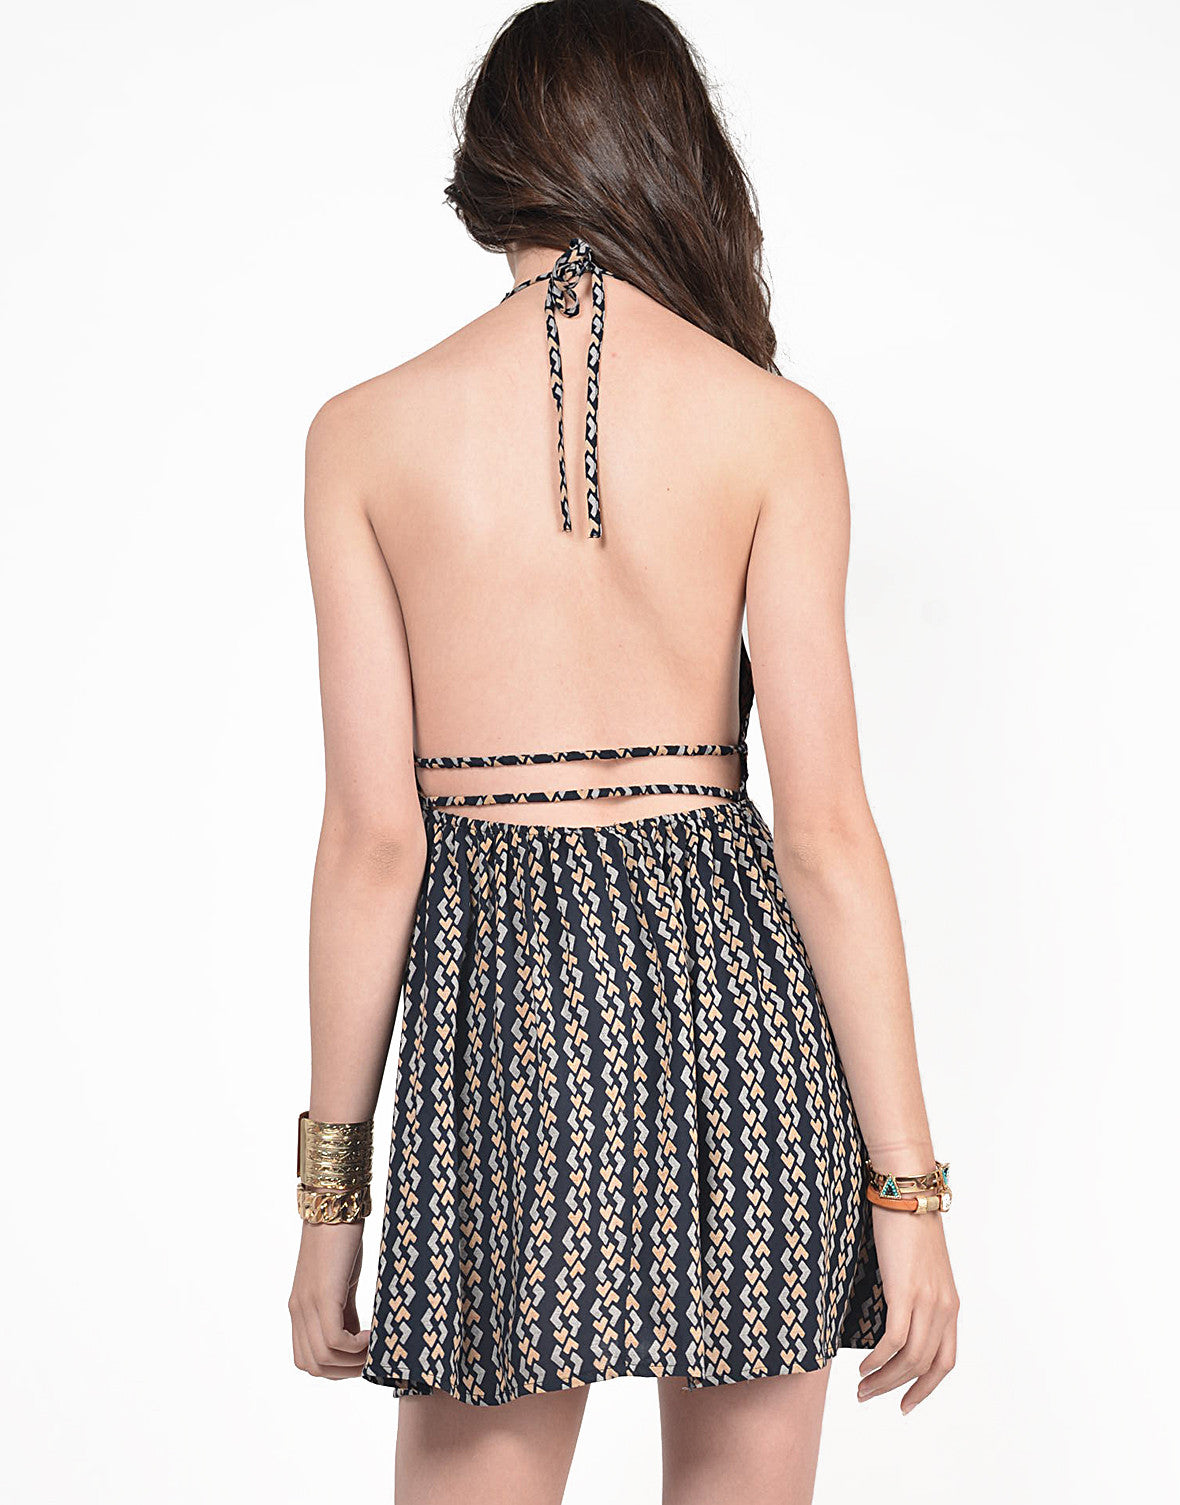 Back View of Geo Print Halter Dress